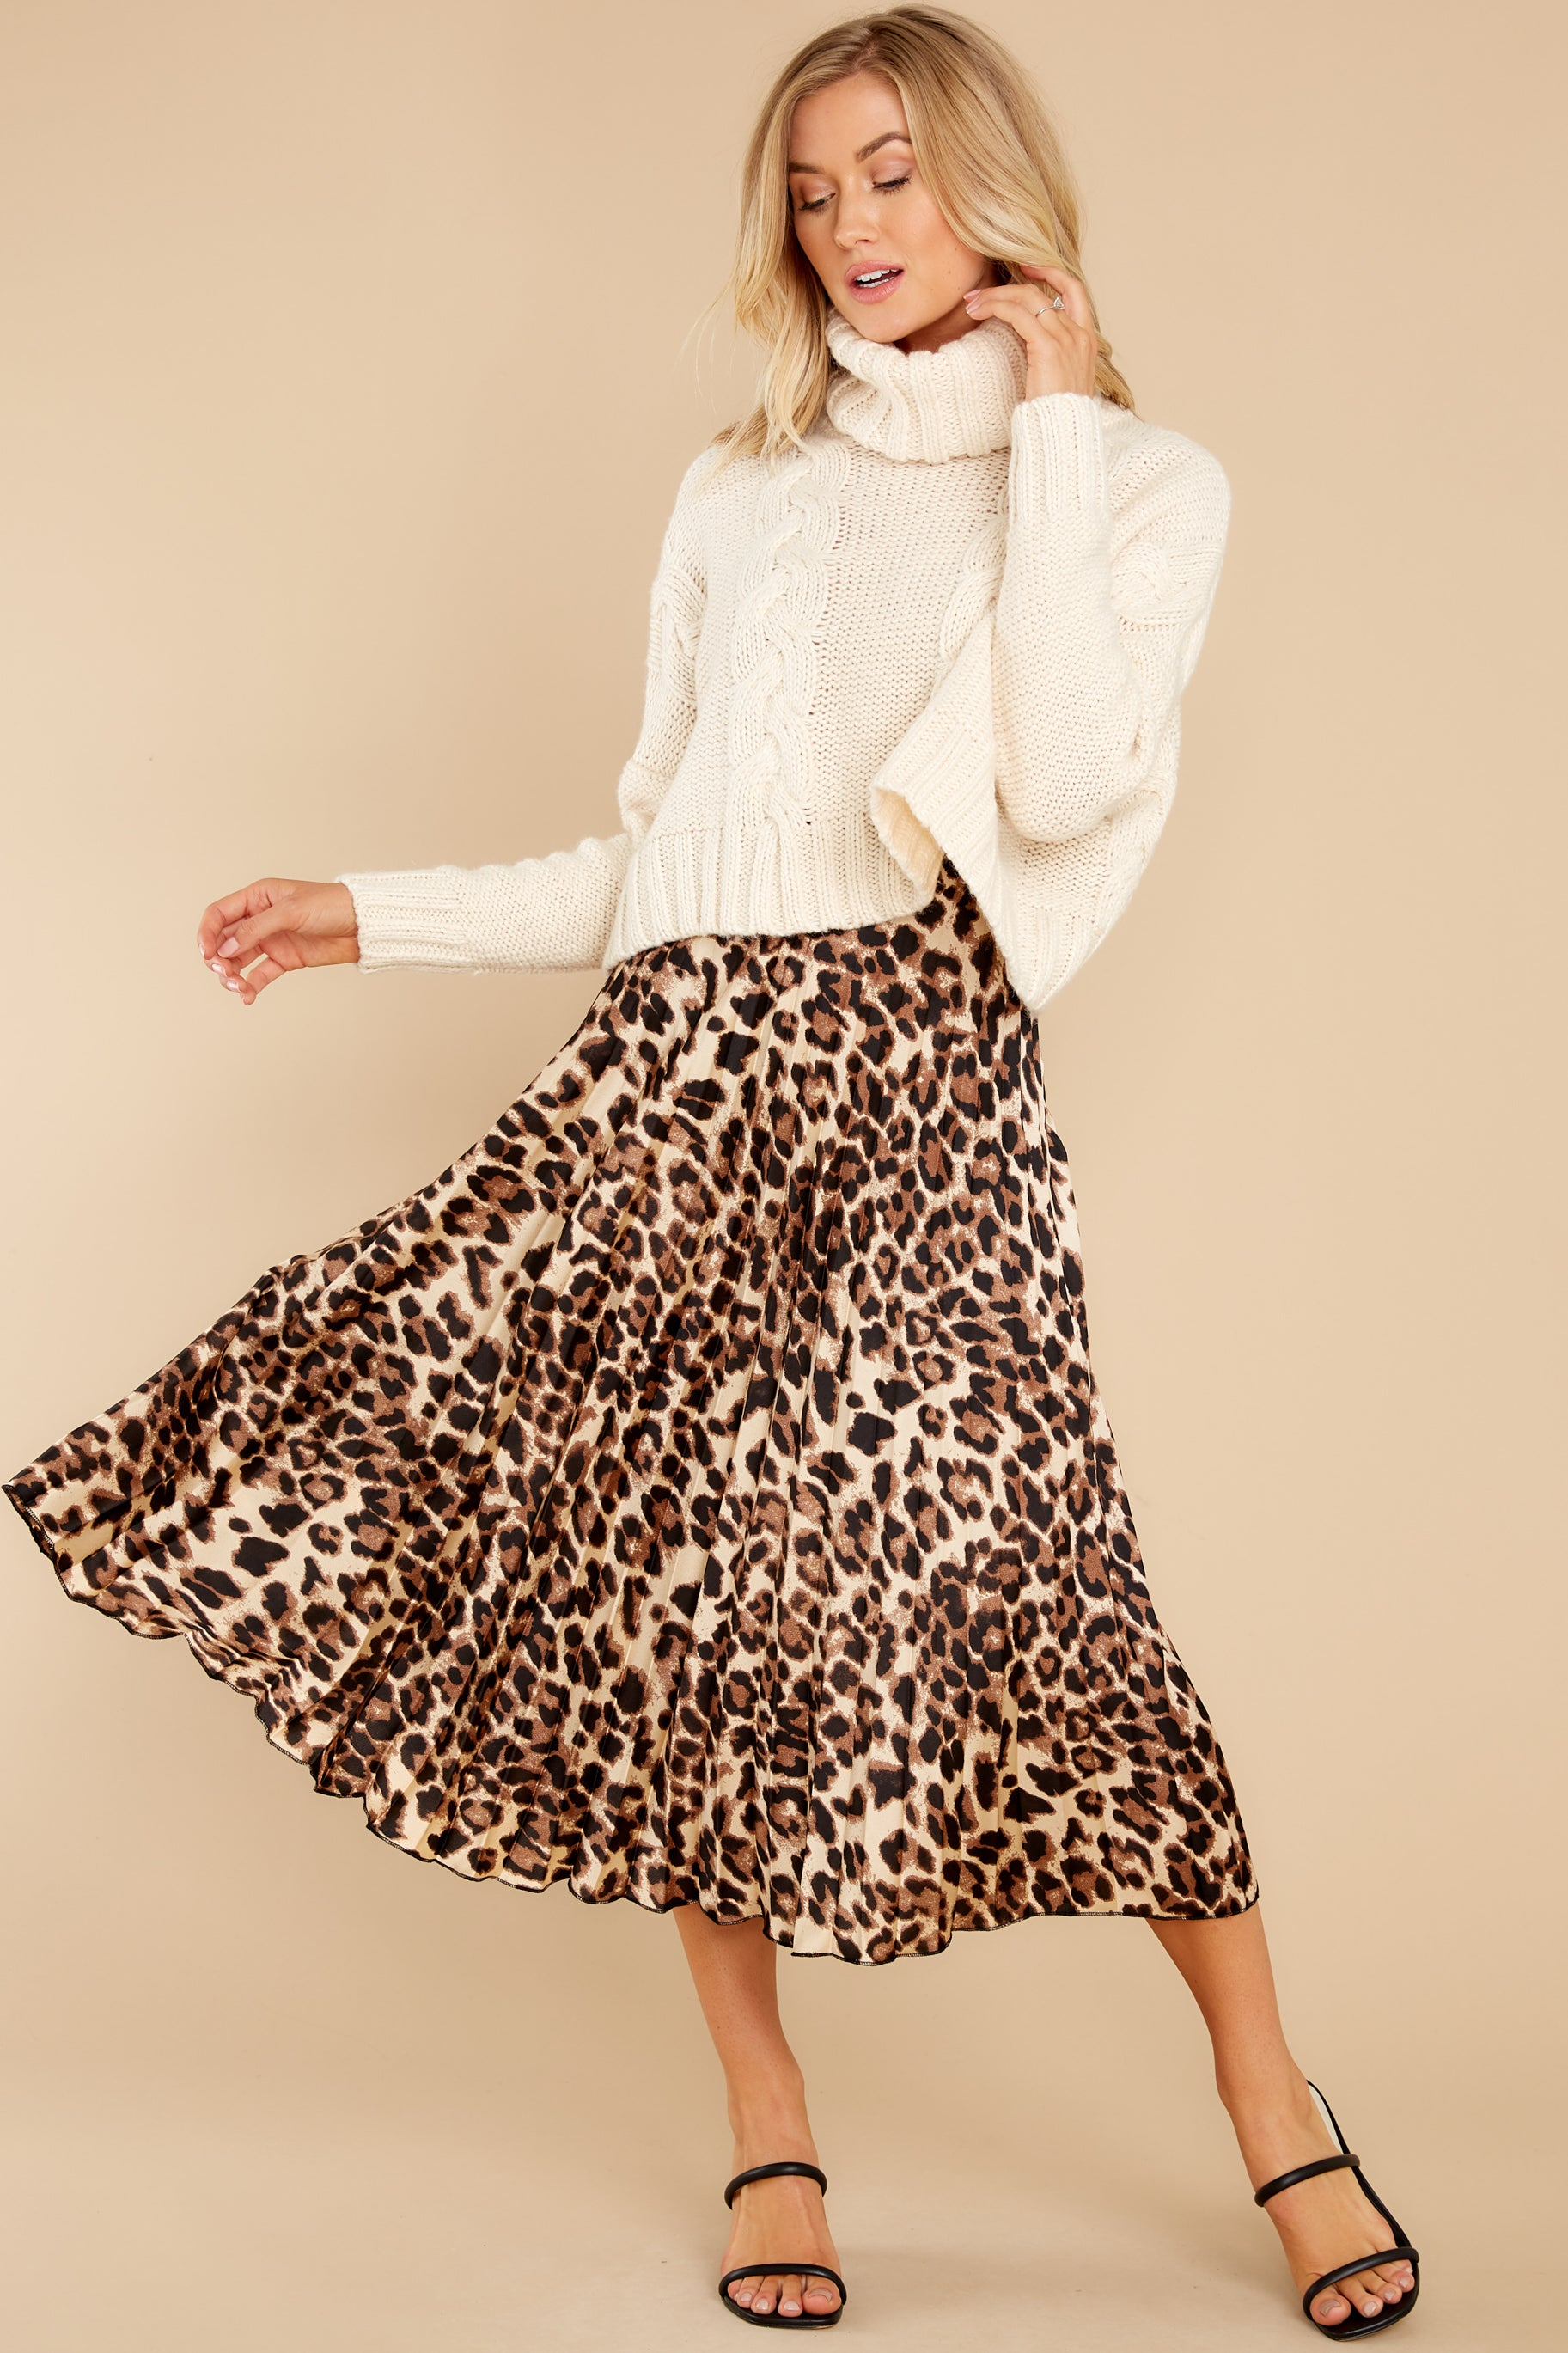 7 Act Wildly Leopard Print Midi Skirt at reddress.com